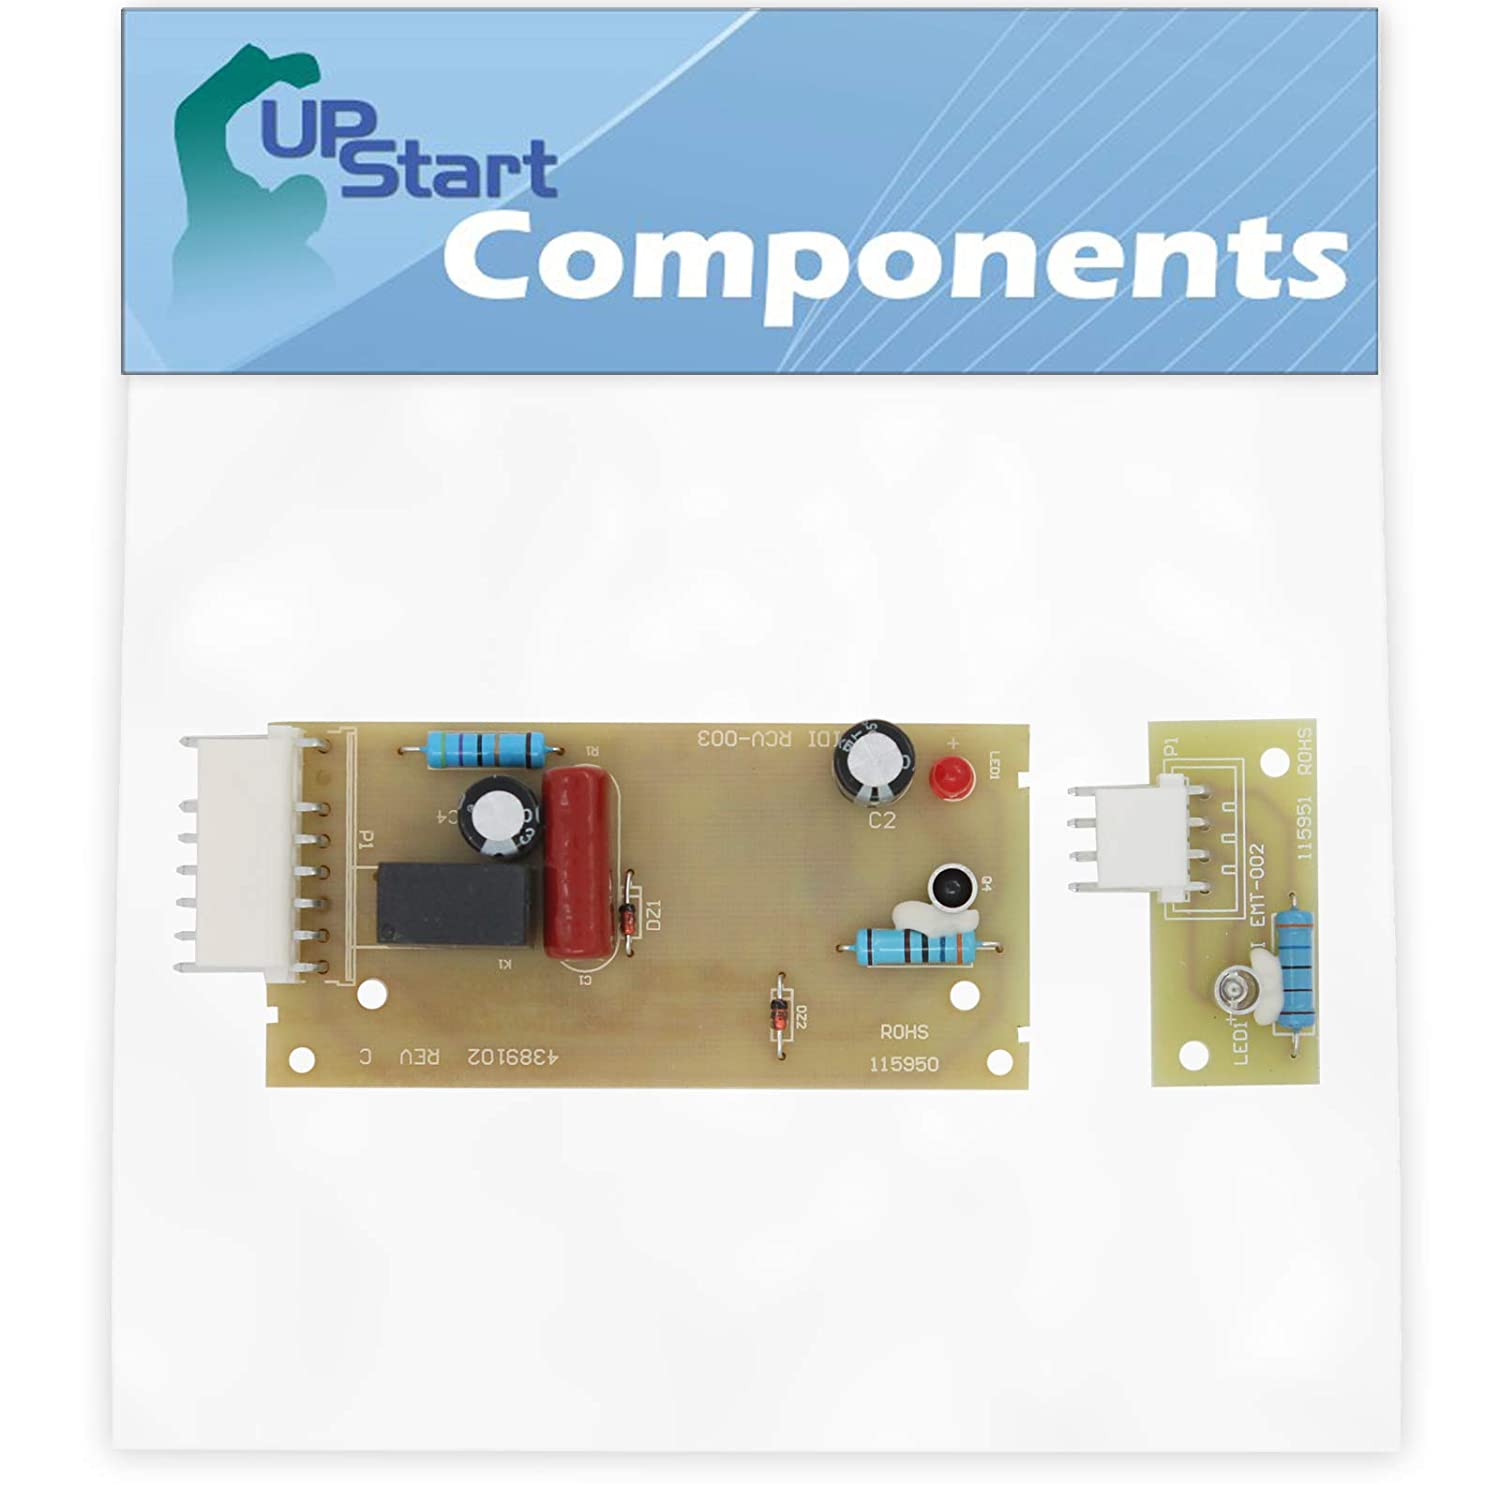 W10757851 Refrigerator Ice Level Control Board Replacement for Whirlpool & KitchenAid Refrigerators - Compatible with Part Number AP5956767, 4389102, 2198585, 2198586, 2220398, 2220402, 2255114